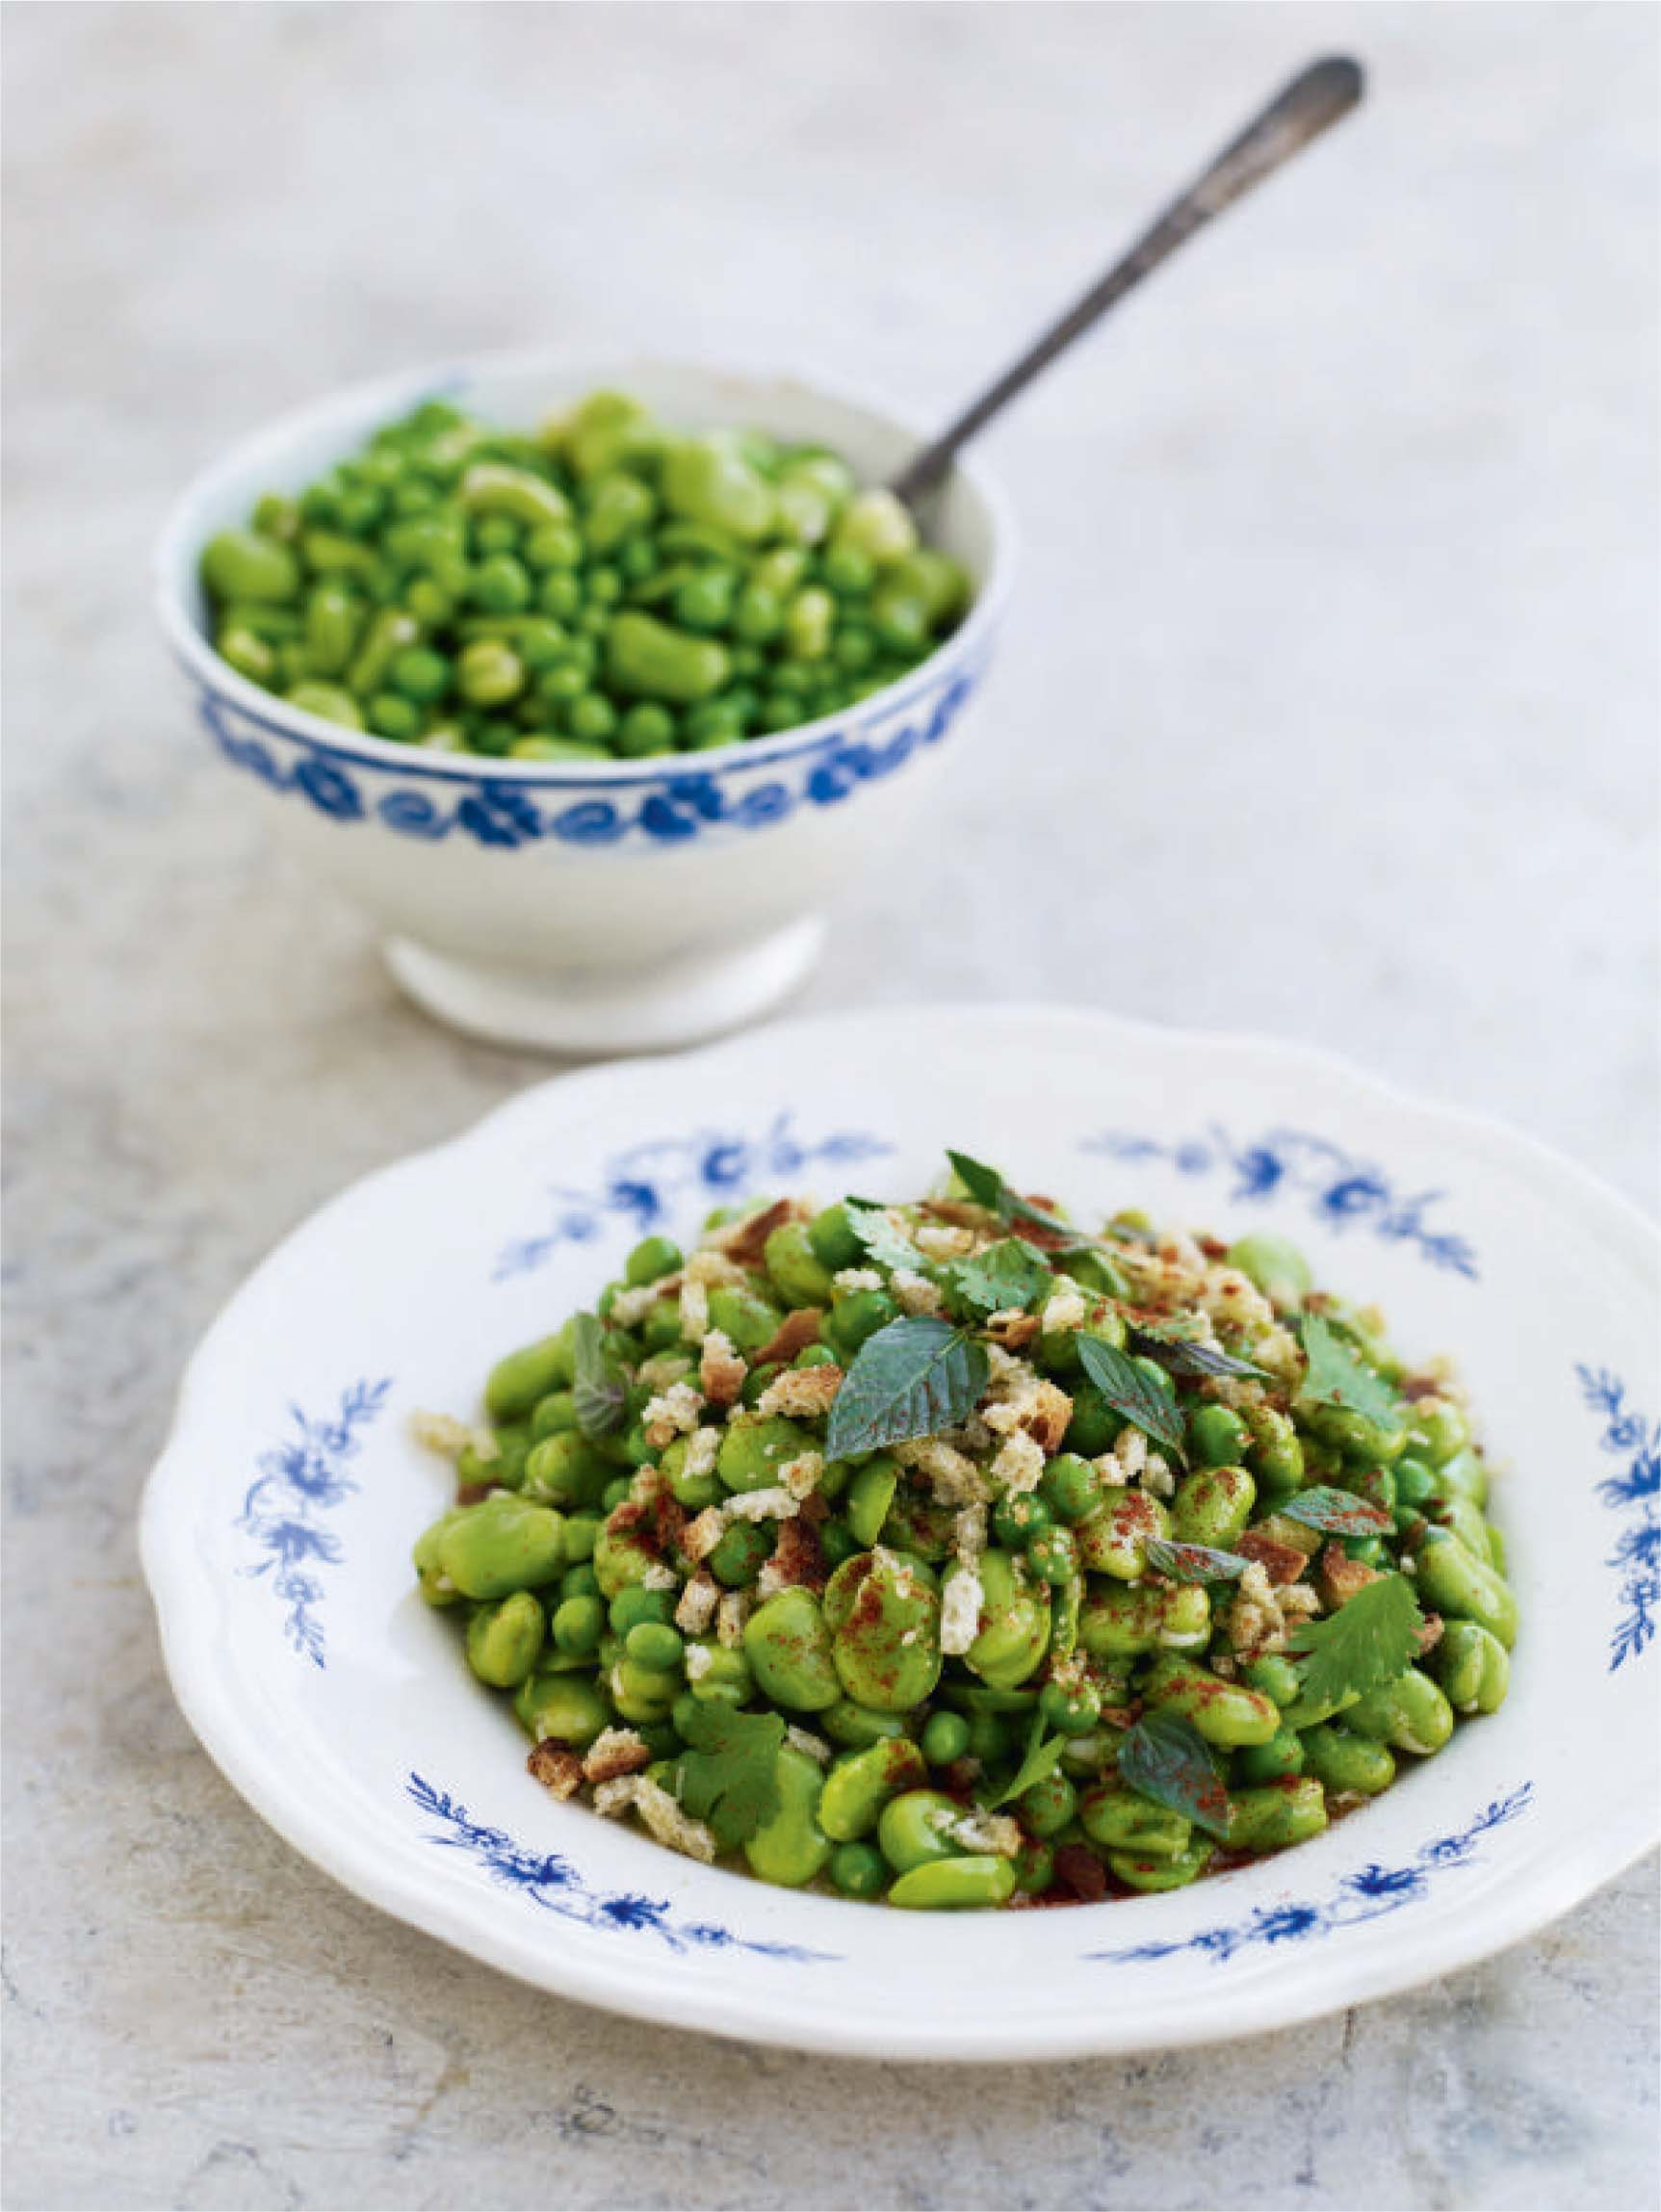 Peas and broad beans with cornbread crumbs